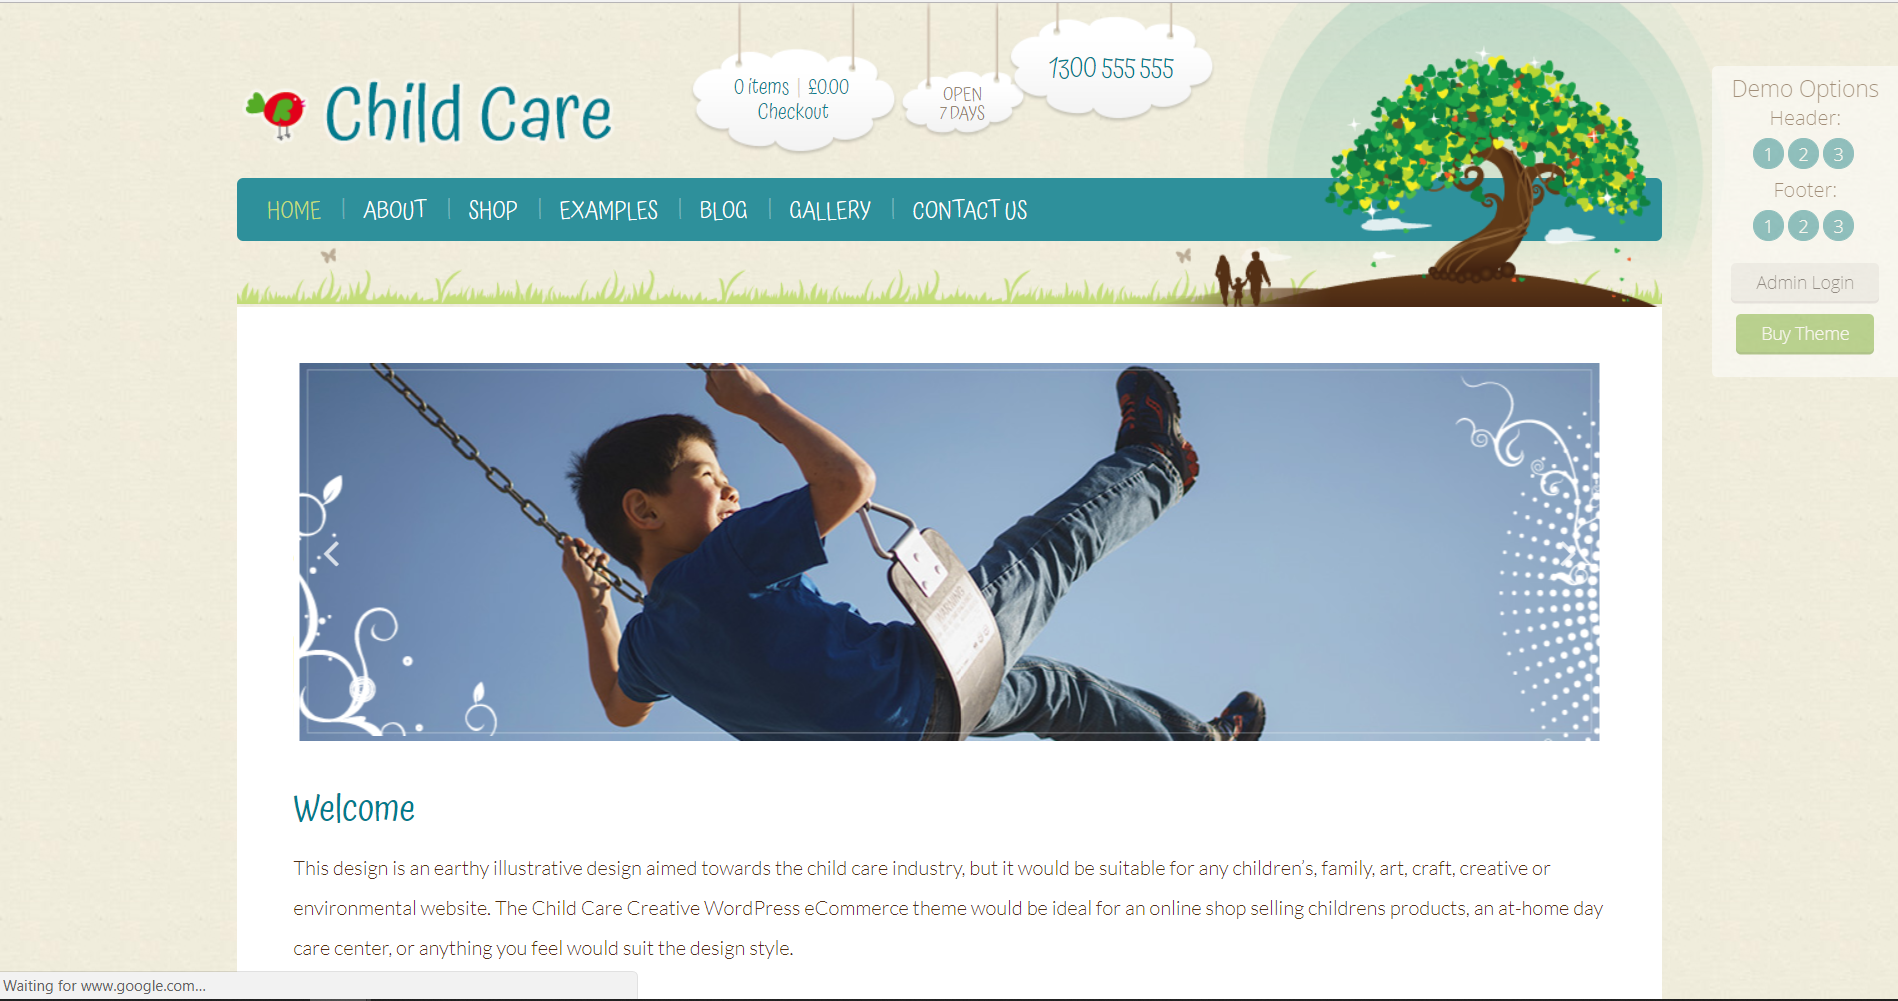 24. Child Care Creative - WordPress Shop Theme